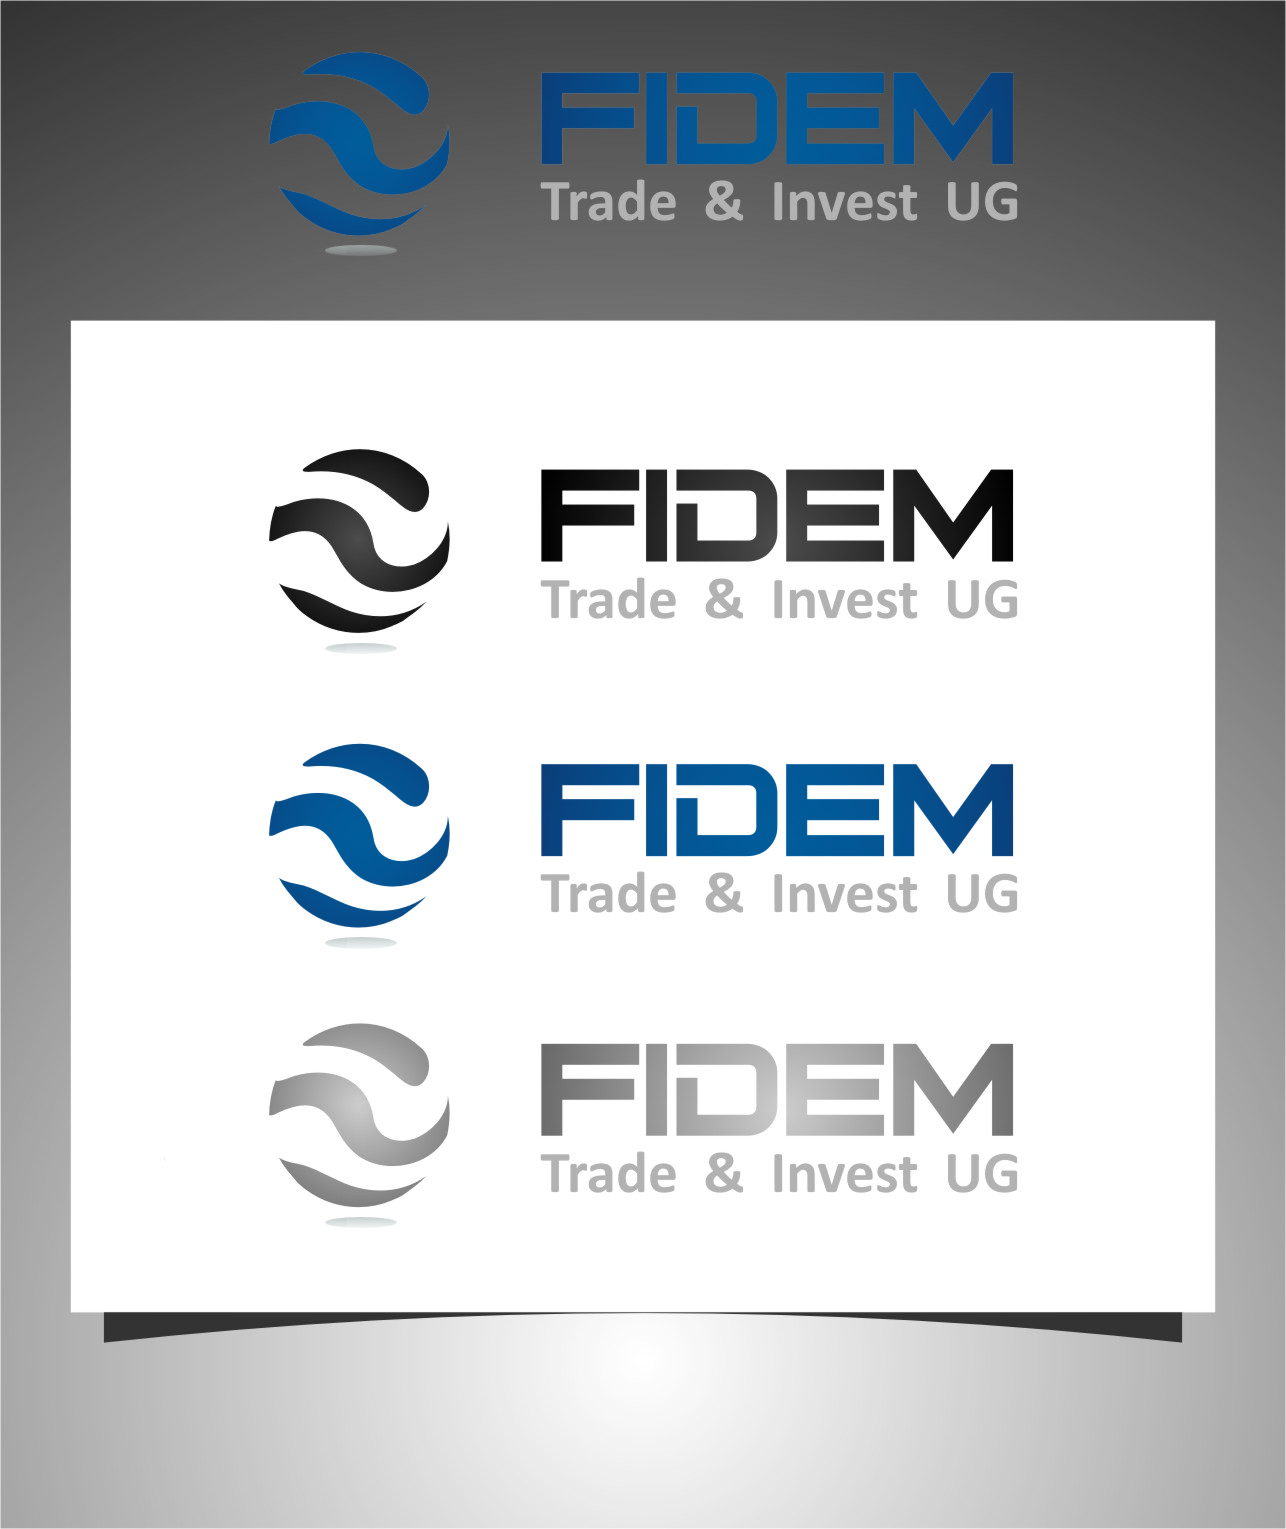 Logo Design by Ngepet_art - Entry No. 283 in the Logo Design Contest Professional Logo Design for FIDEM Trade & Invest UG.